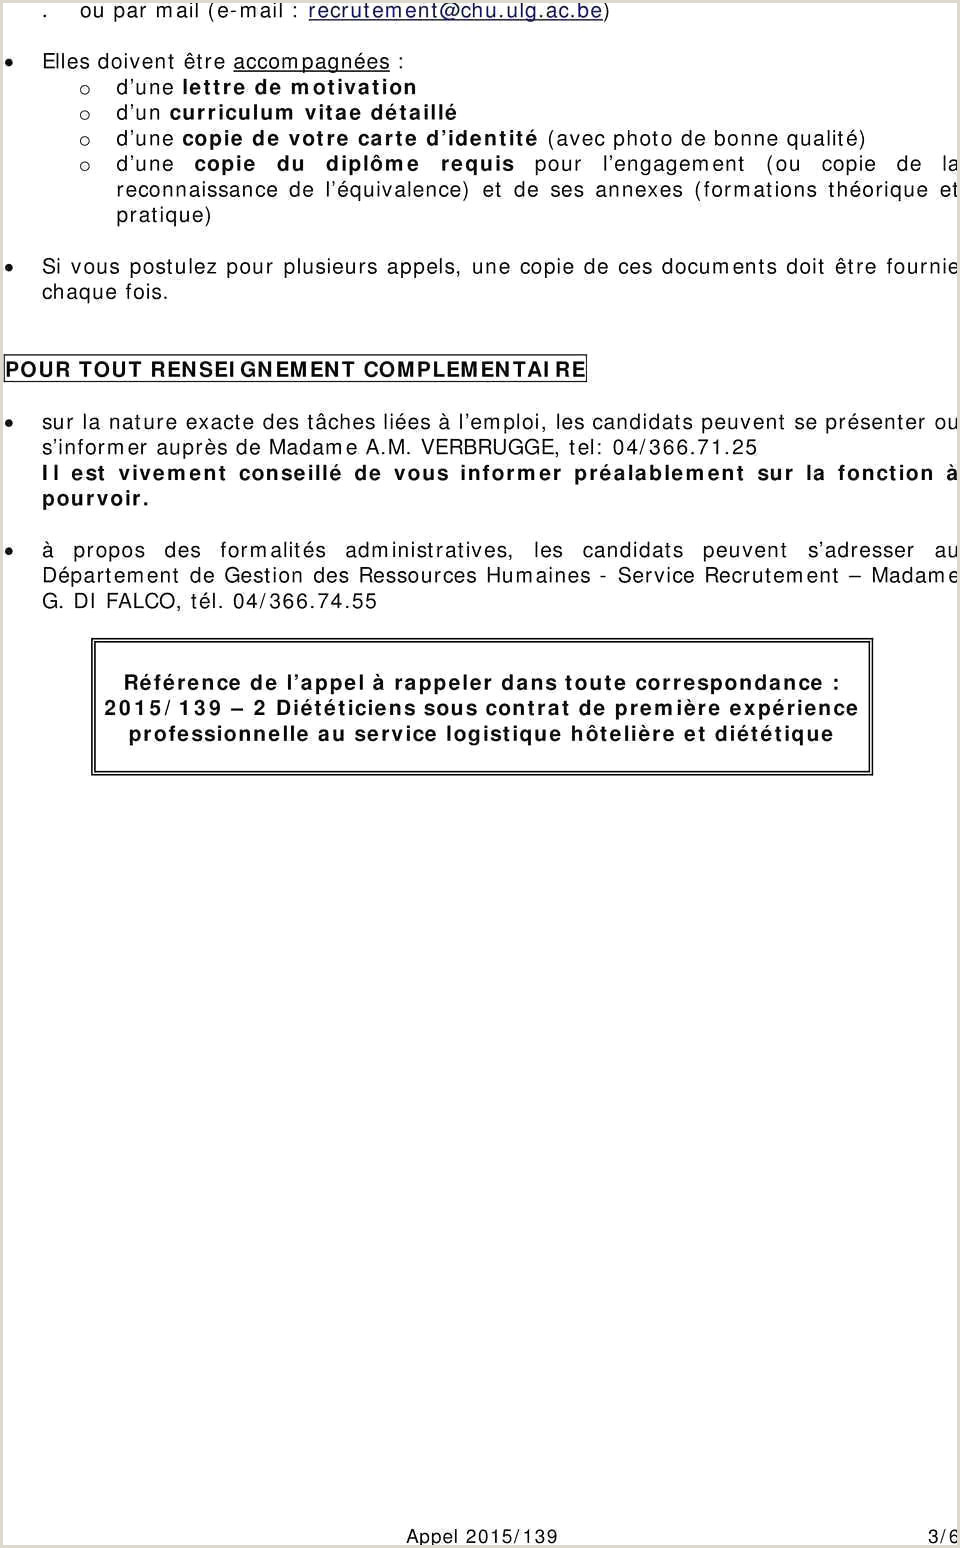 Exemple De Cv Vendeuse Polyvalente Exemple Lettre De Motivation Boulangerie 70 Exemples Cv